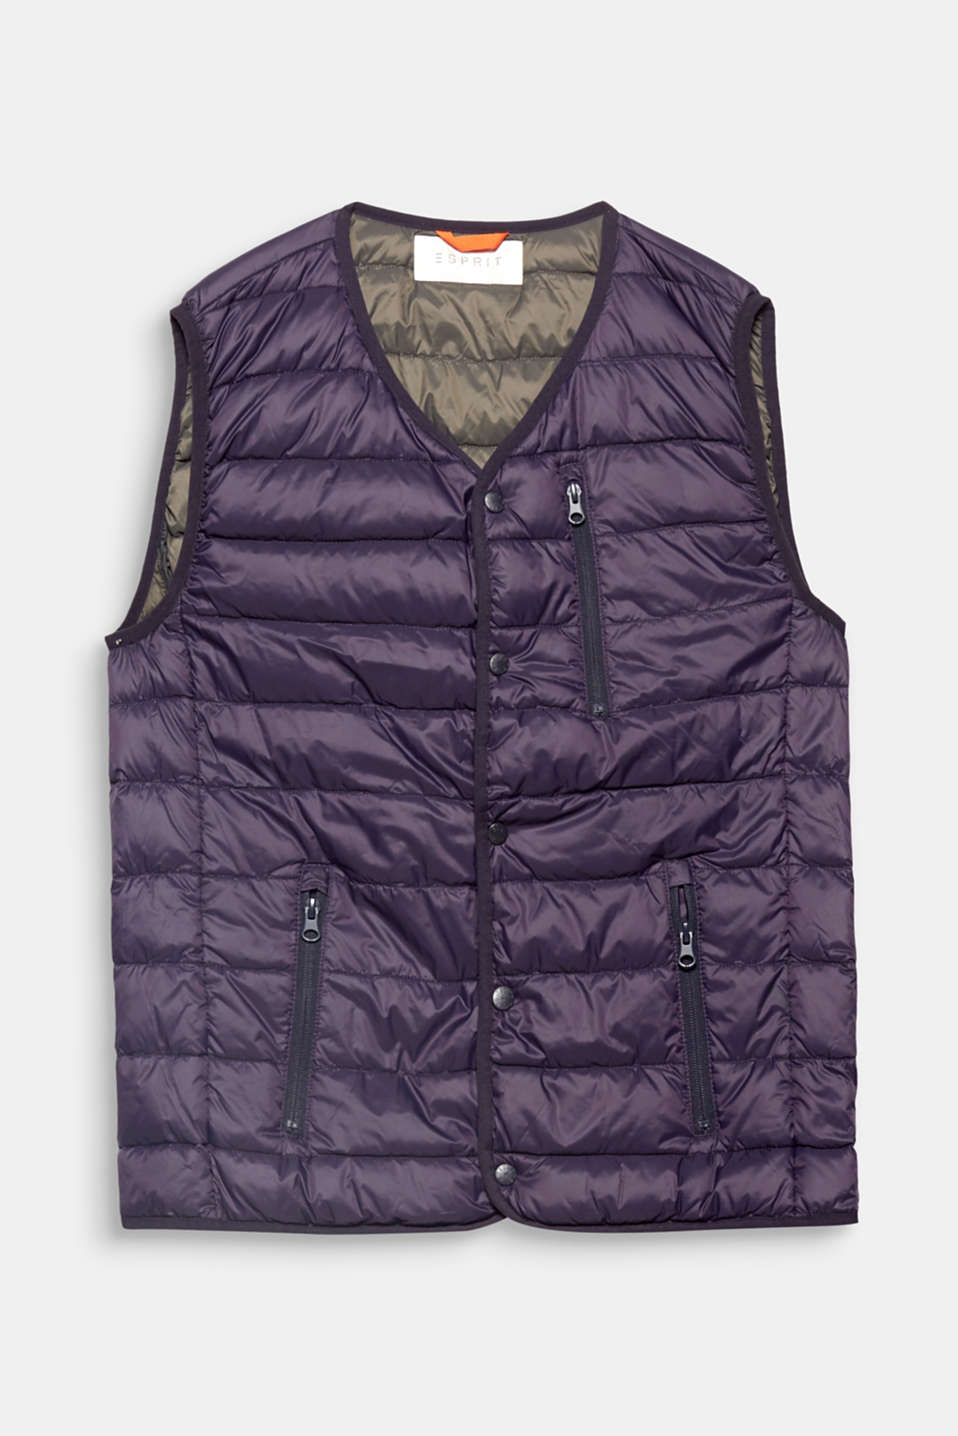 Perfect for between seasons or over a coat on cold winter days: quilted body warmer with RDS-certified down/feather filling.